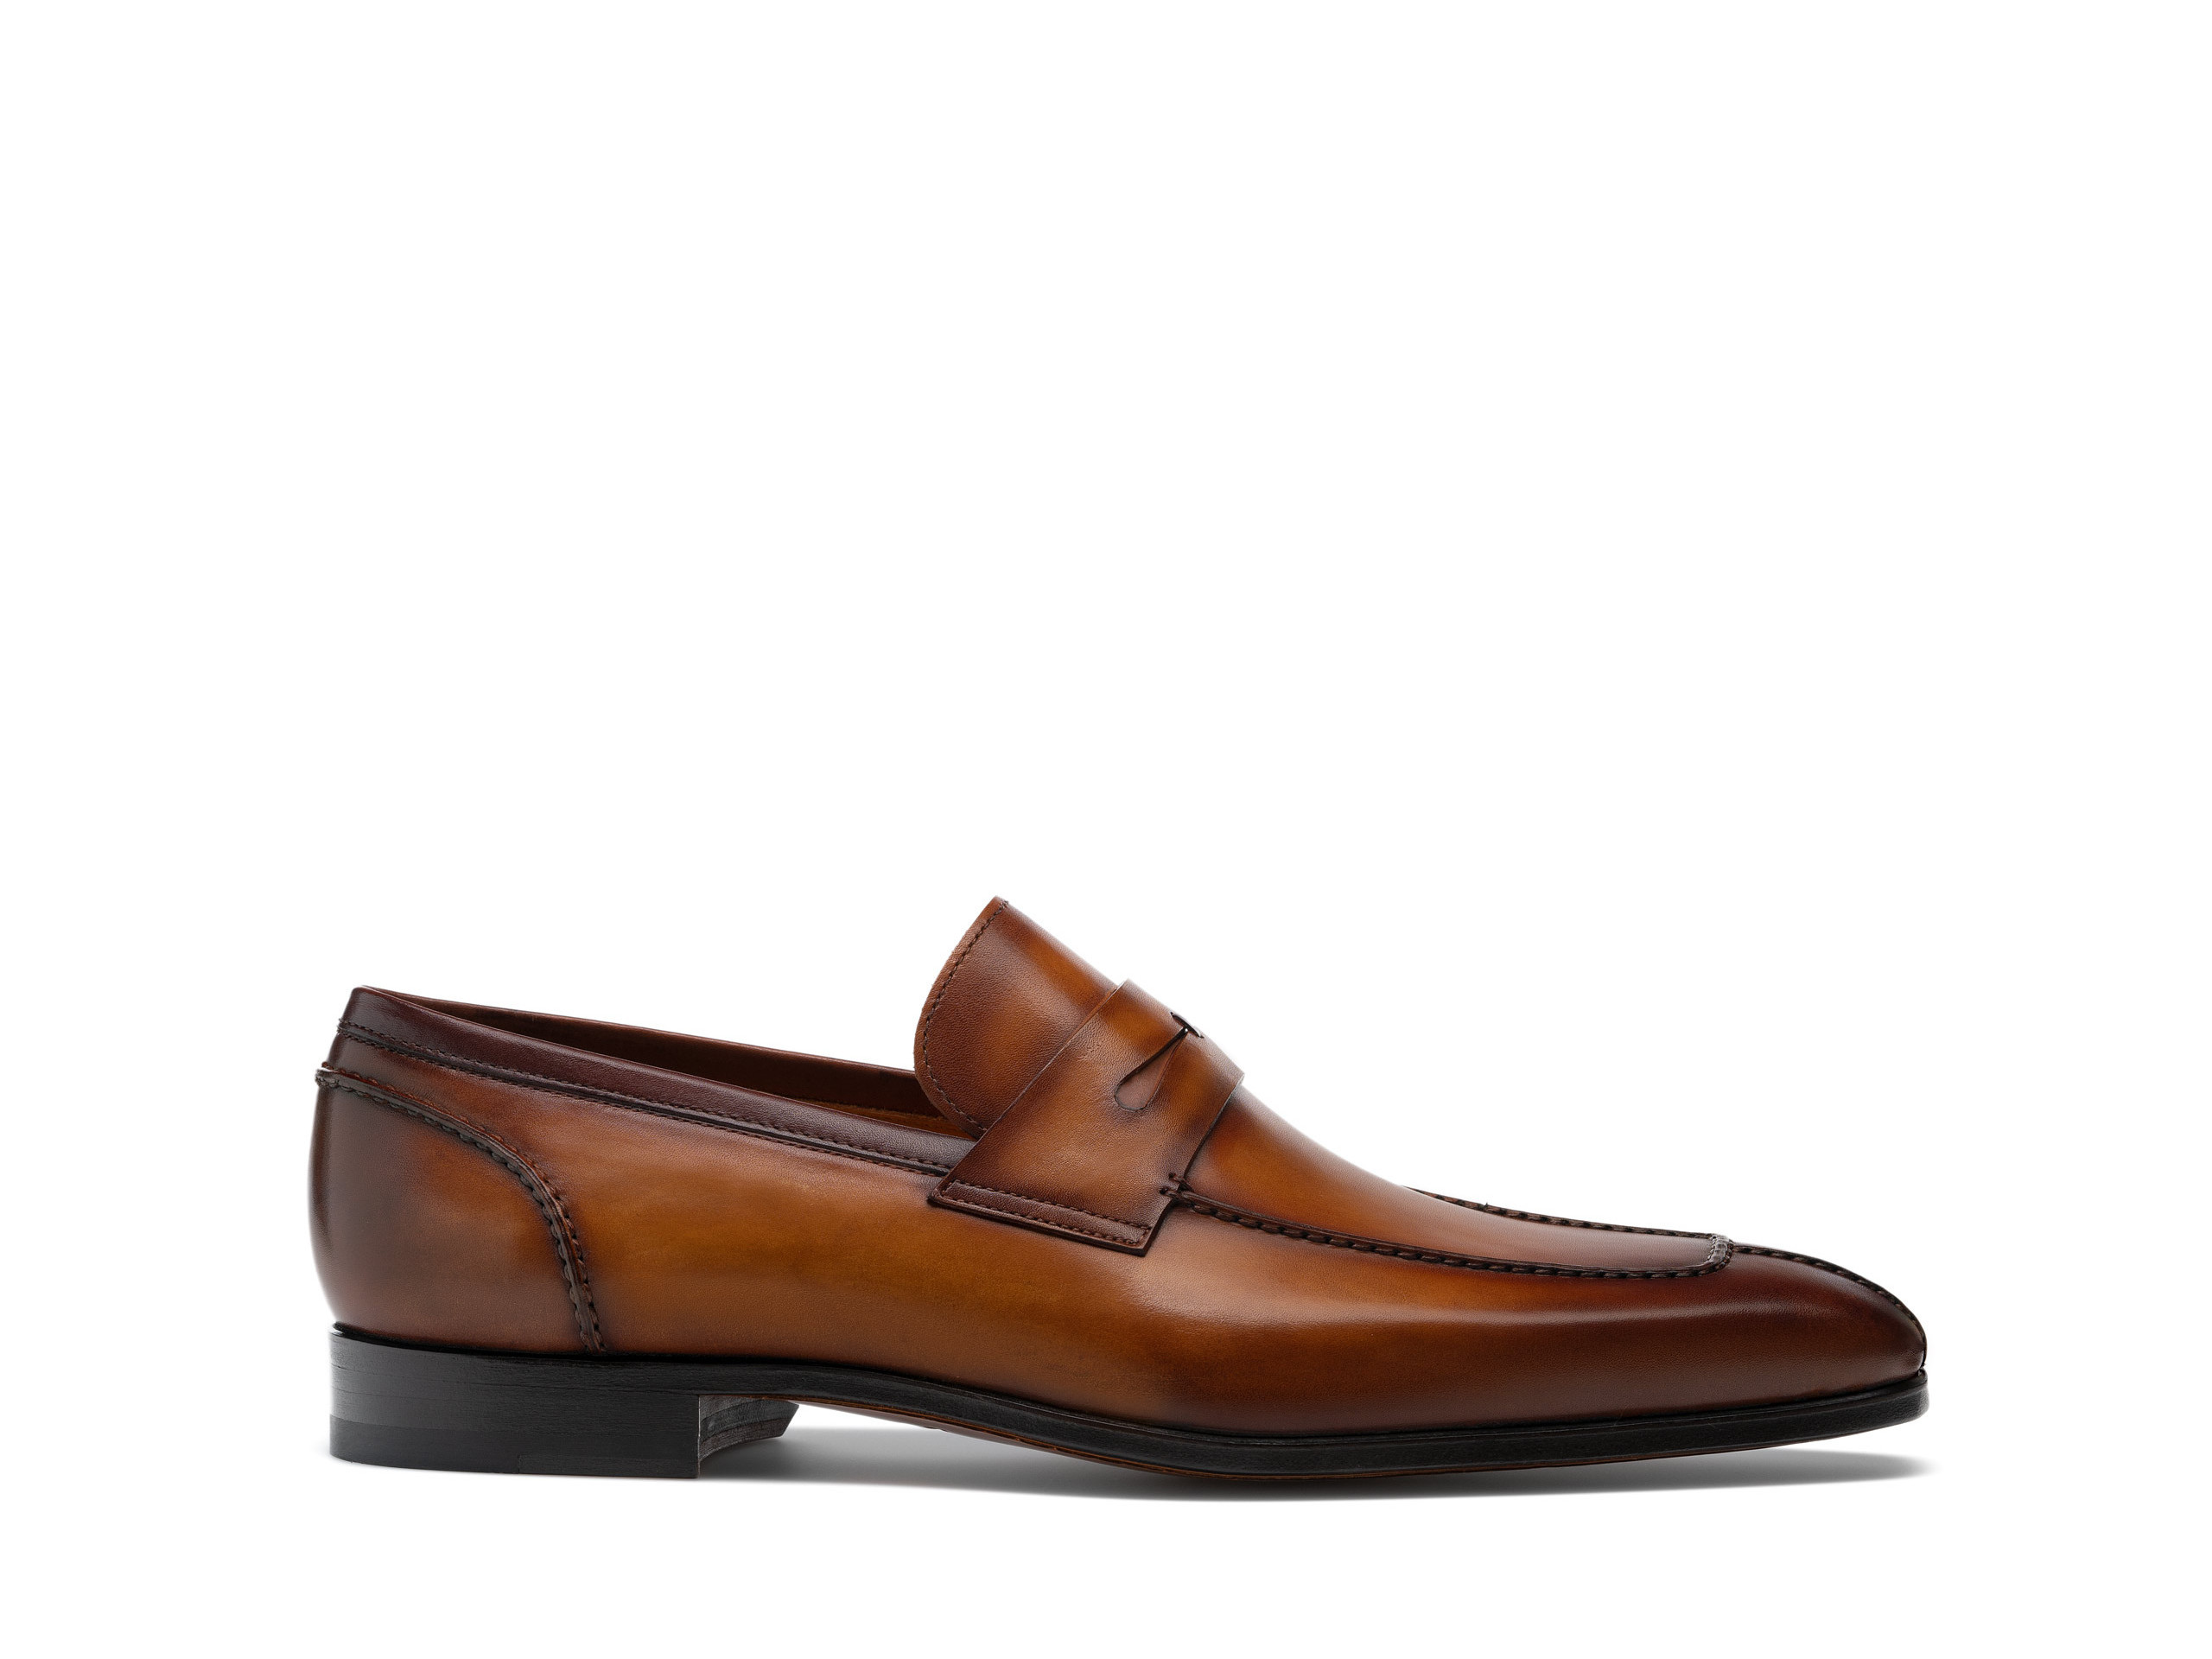 Side view of the Magnanni Coripe Cuero Men's Penny Loafers